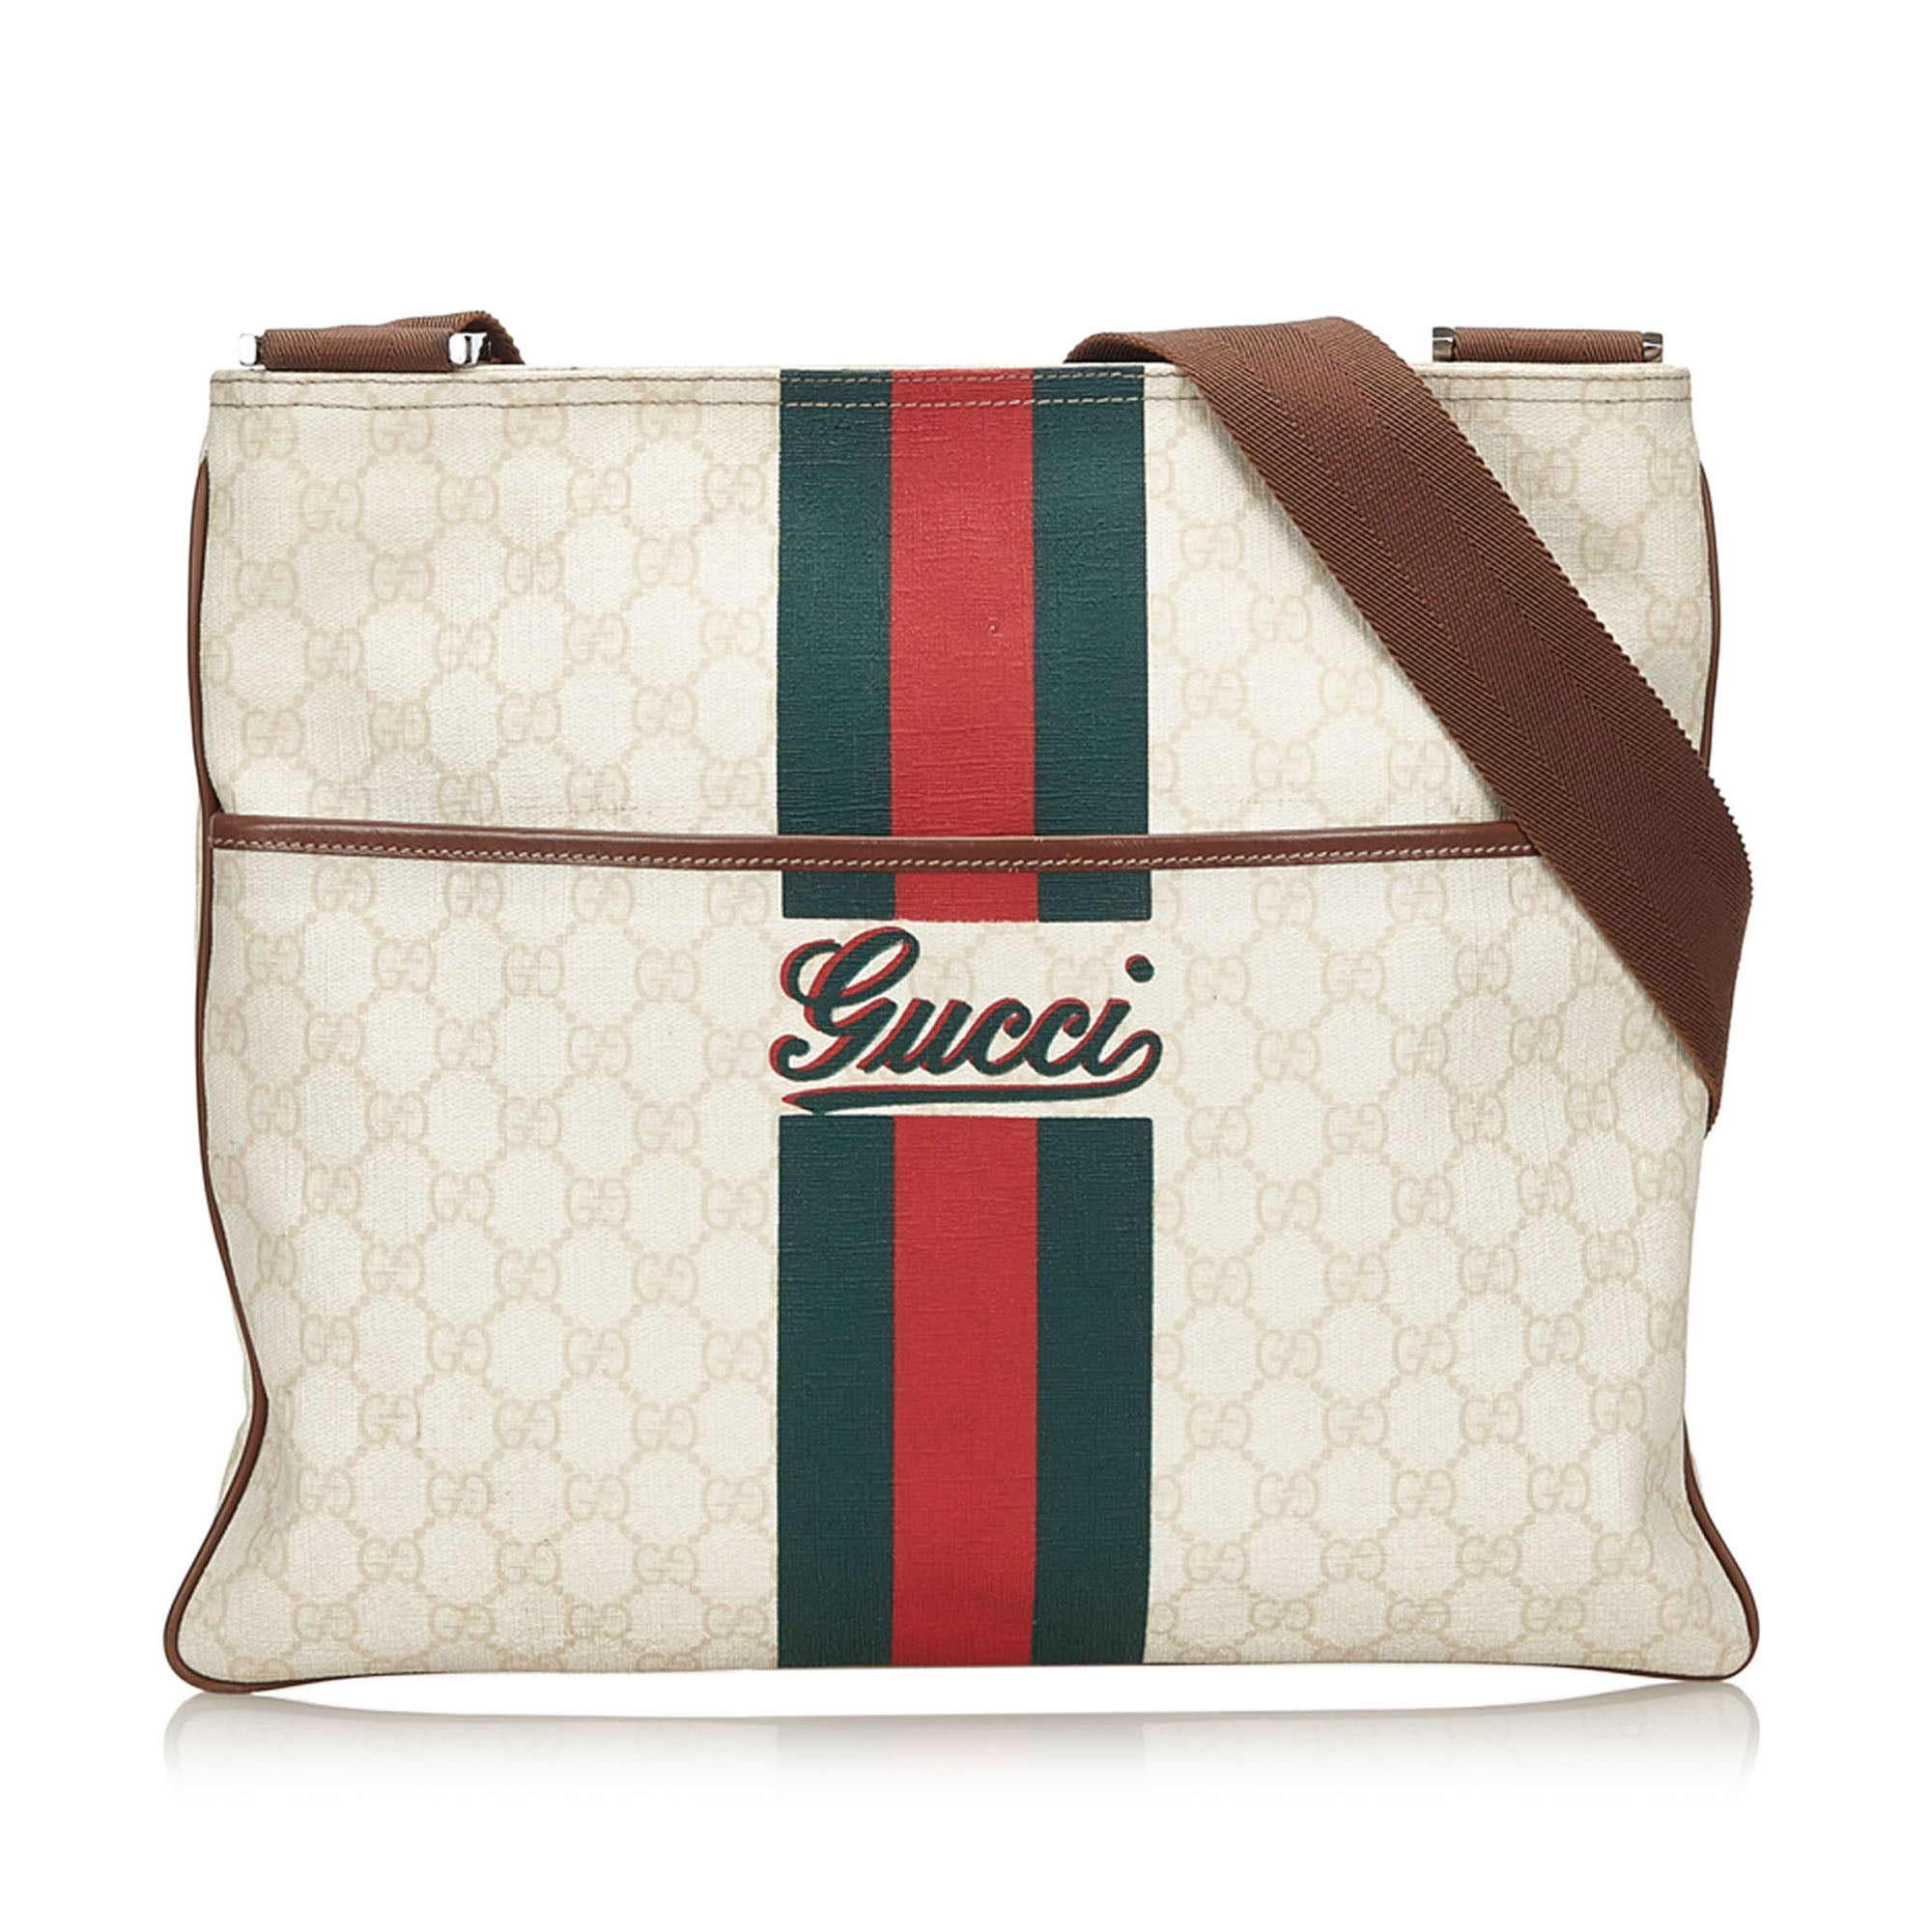 f52f2d2e1d9c GUCCI WEB SUPREME GG CROSSBODY BAG Shop the best value on authentic  designer resale consignment on ...